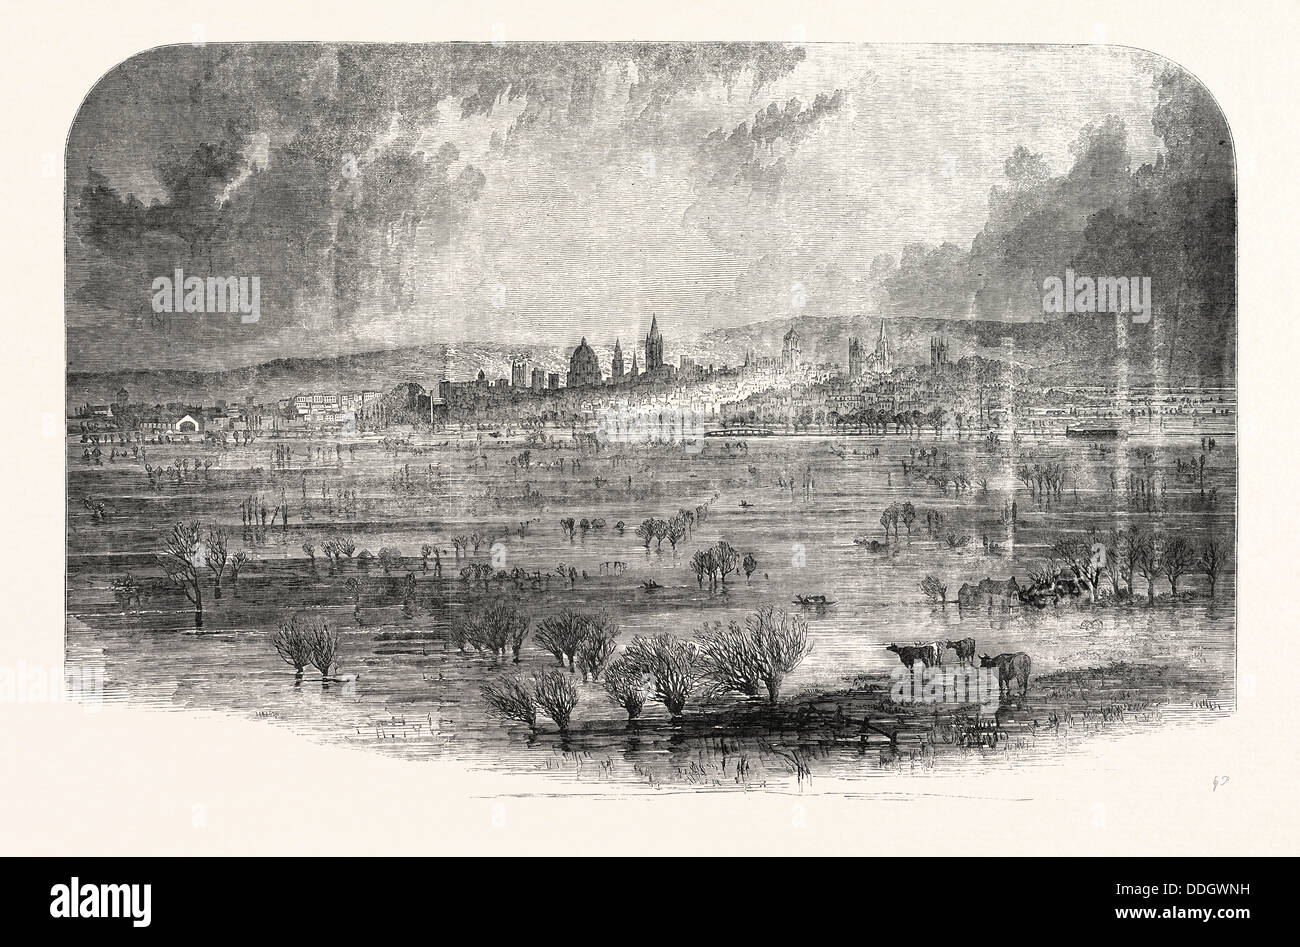 THE INUNDATION AT OXFORD, UK, 1852 - Stock Image